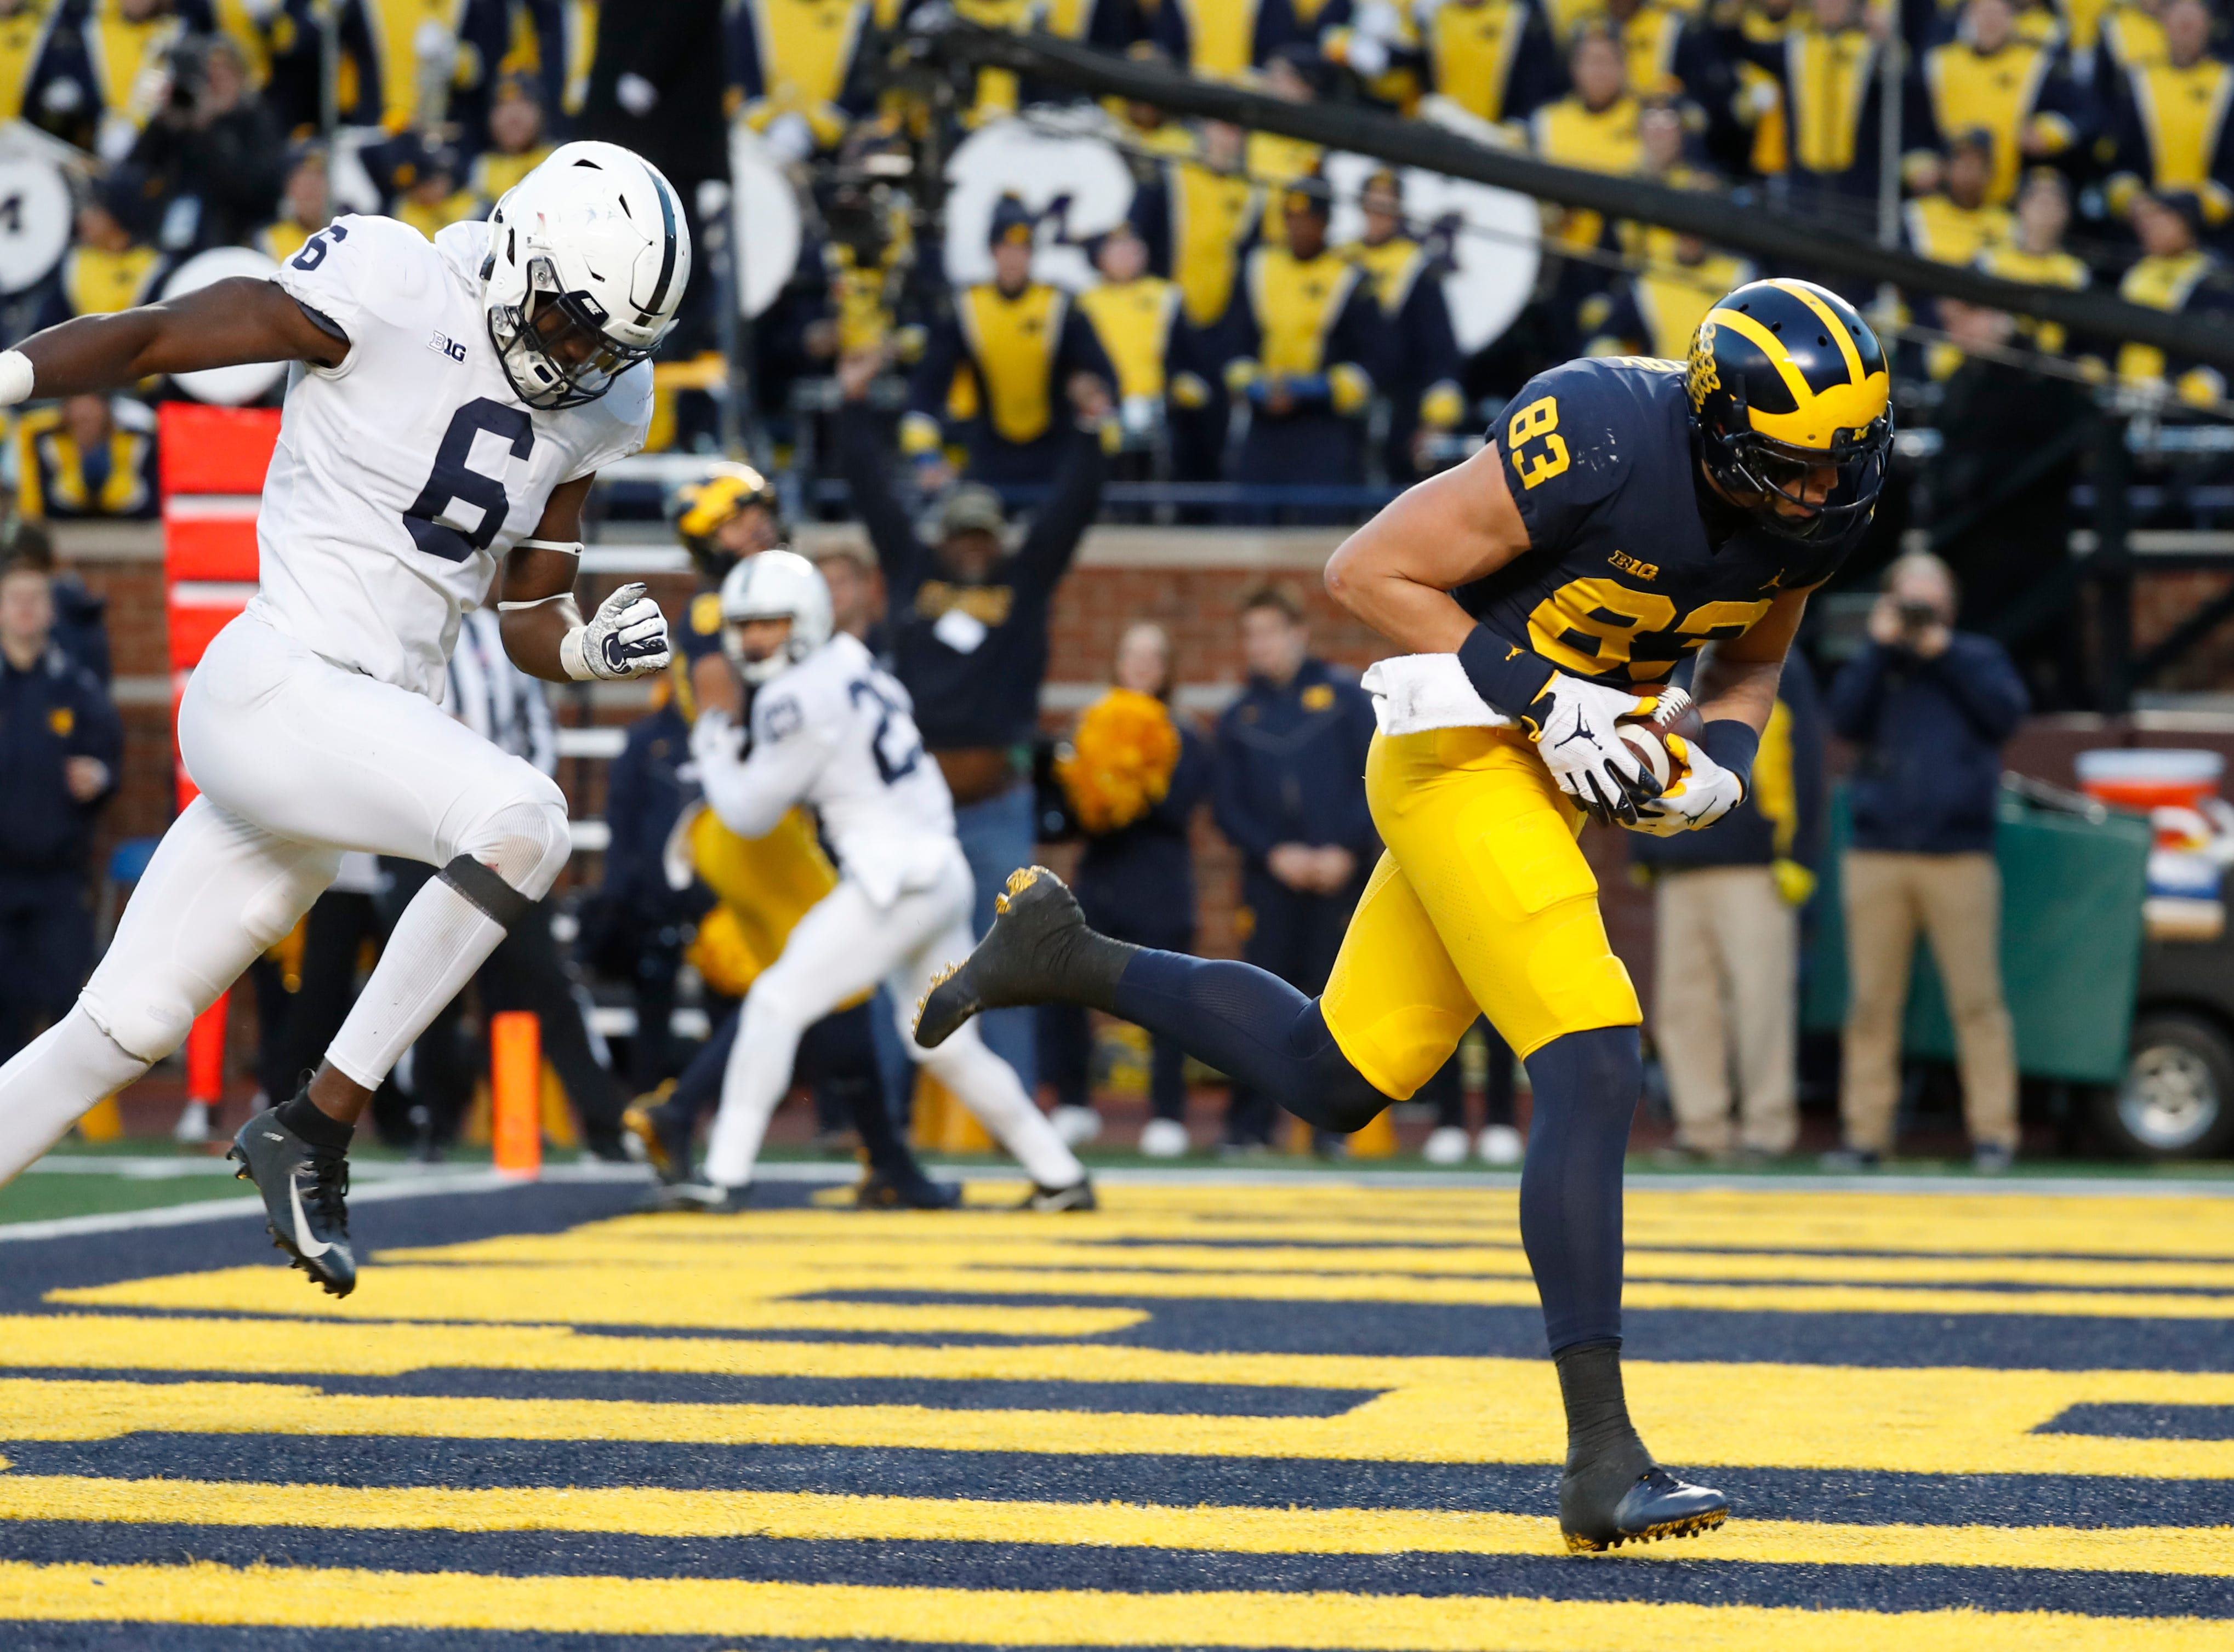 Michigan tight end Zach Gentry (83) catches a 7-yard touchdown pass as Penn State linebacker Cam Brown (6) defends in the second half of an NCAA college football game in Ann Arbor, Mich., Saturday, Nov. 3, 2018. (AP Photo/Paul Sancya)